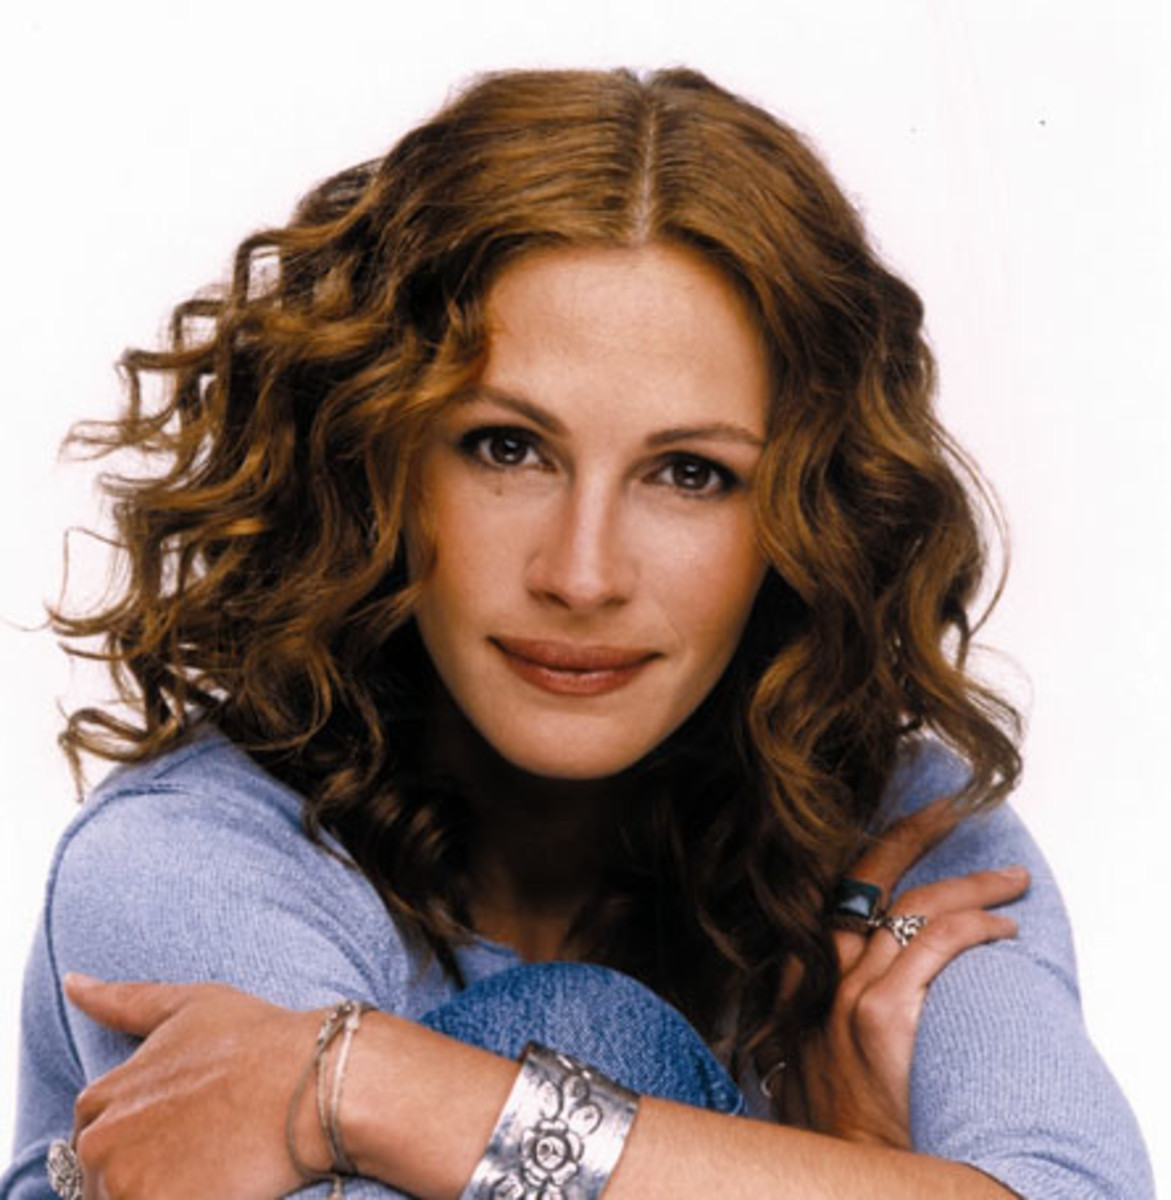 Top 10 Best Julia Roberts Romantic Movies